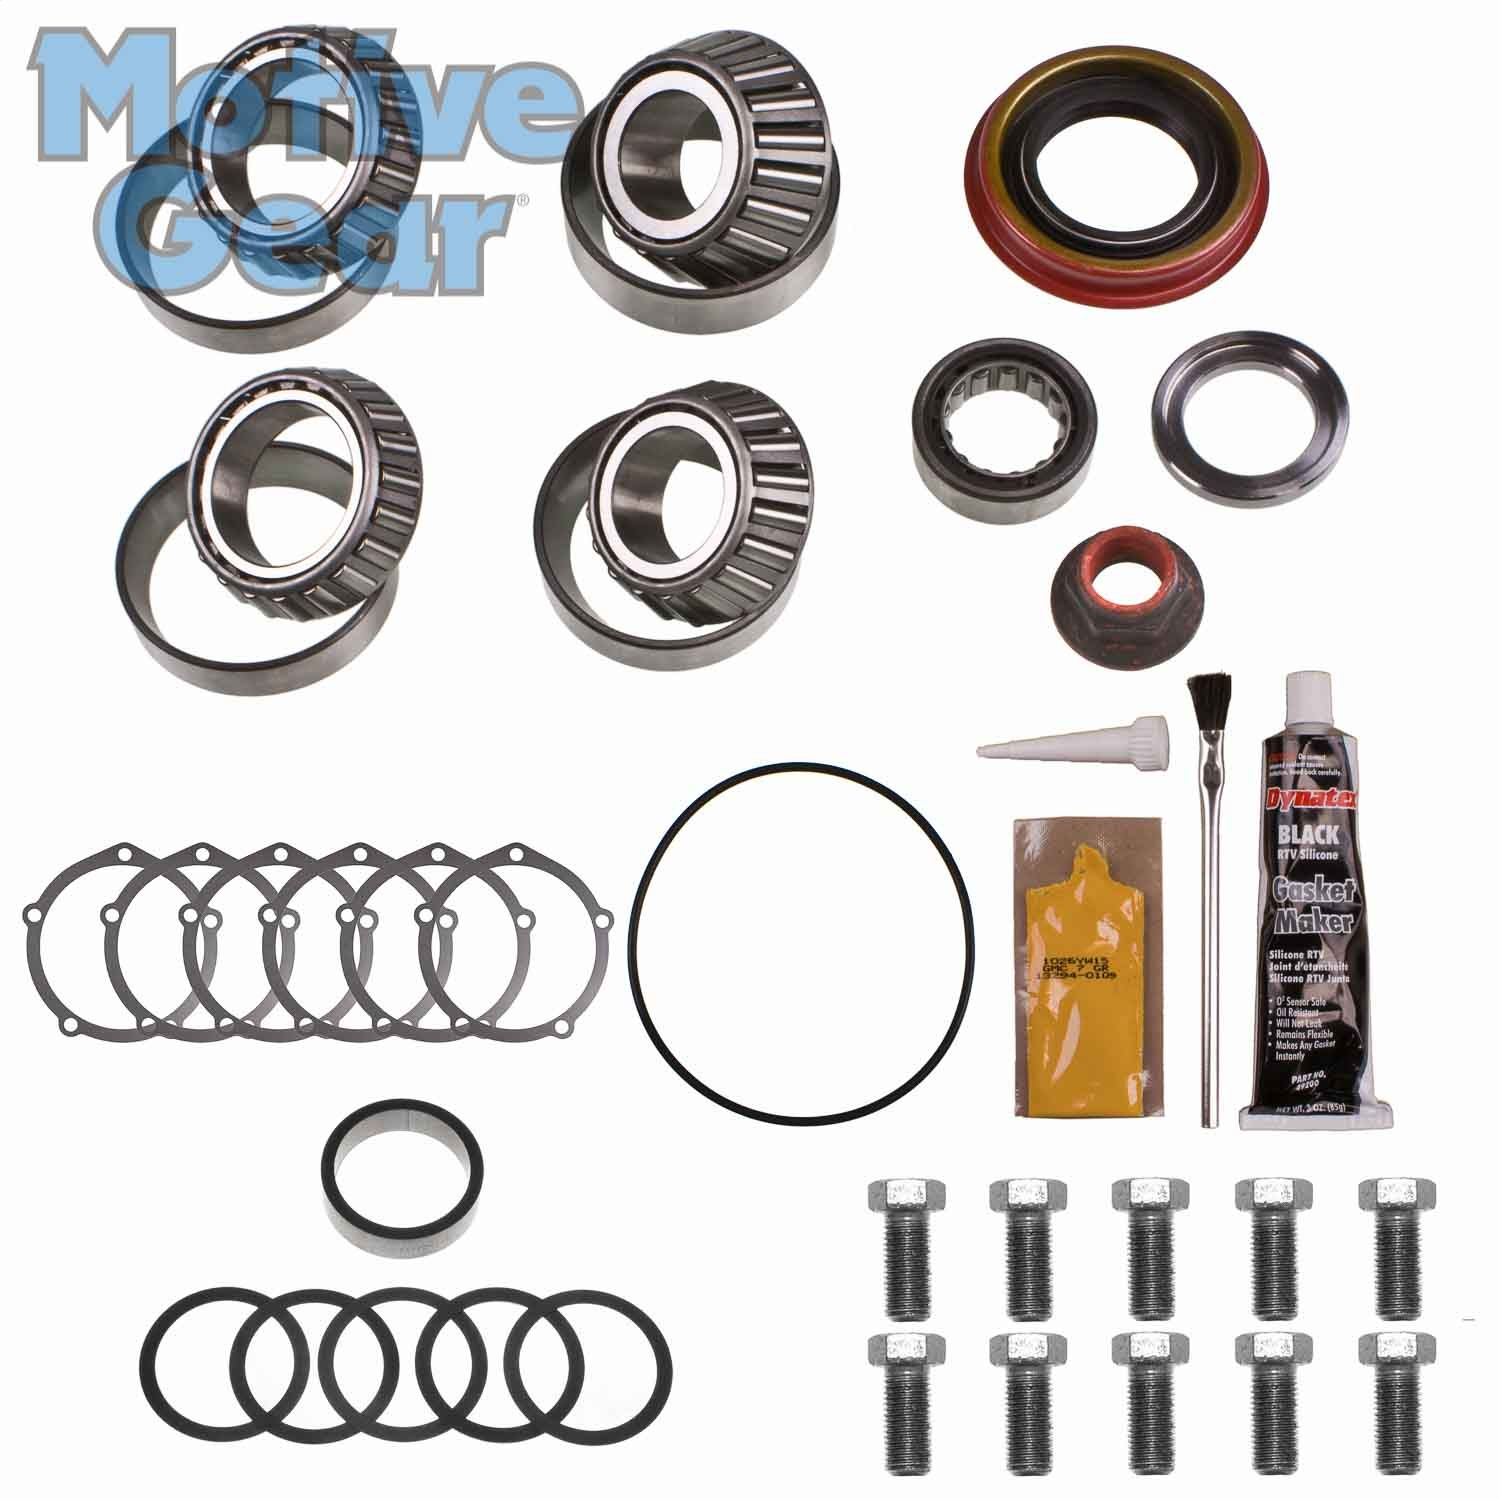 Motive Gear R9R306MK MOGR9R306MK FORD 9 W/3.062 HOUSING & LG REAR PINION BEARING MASTER BEARING KIT TIMKEN